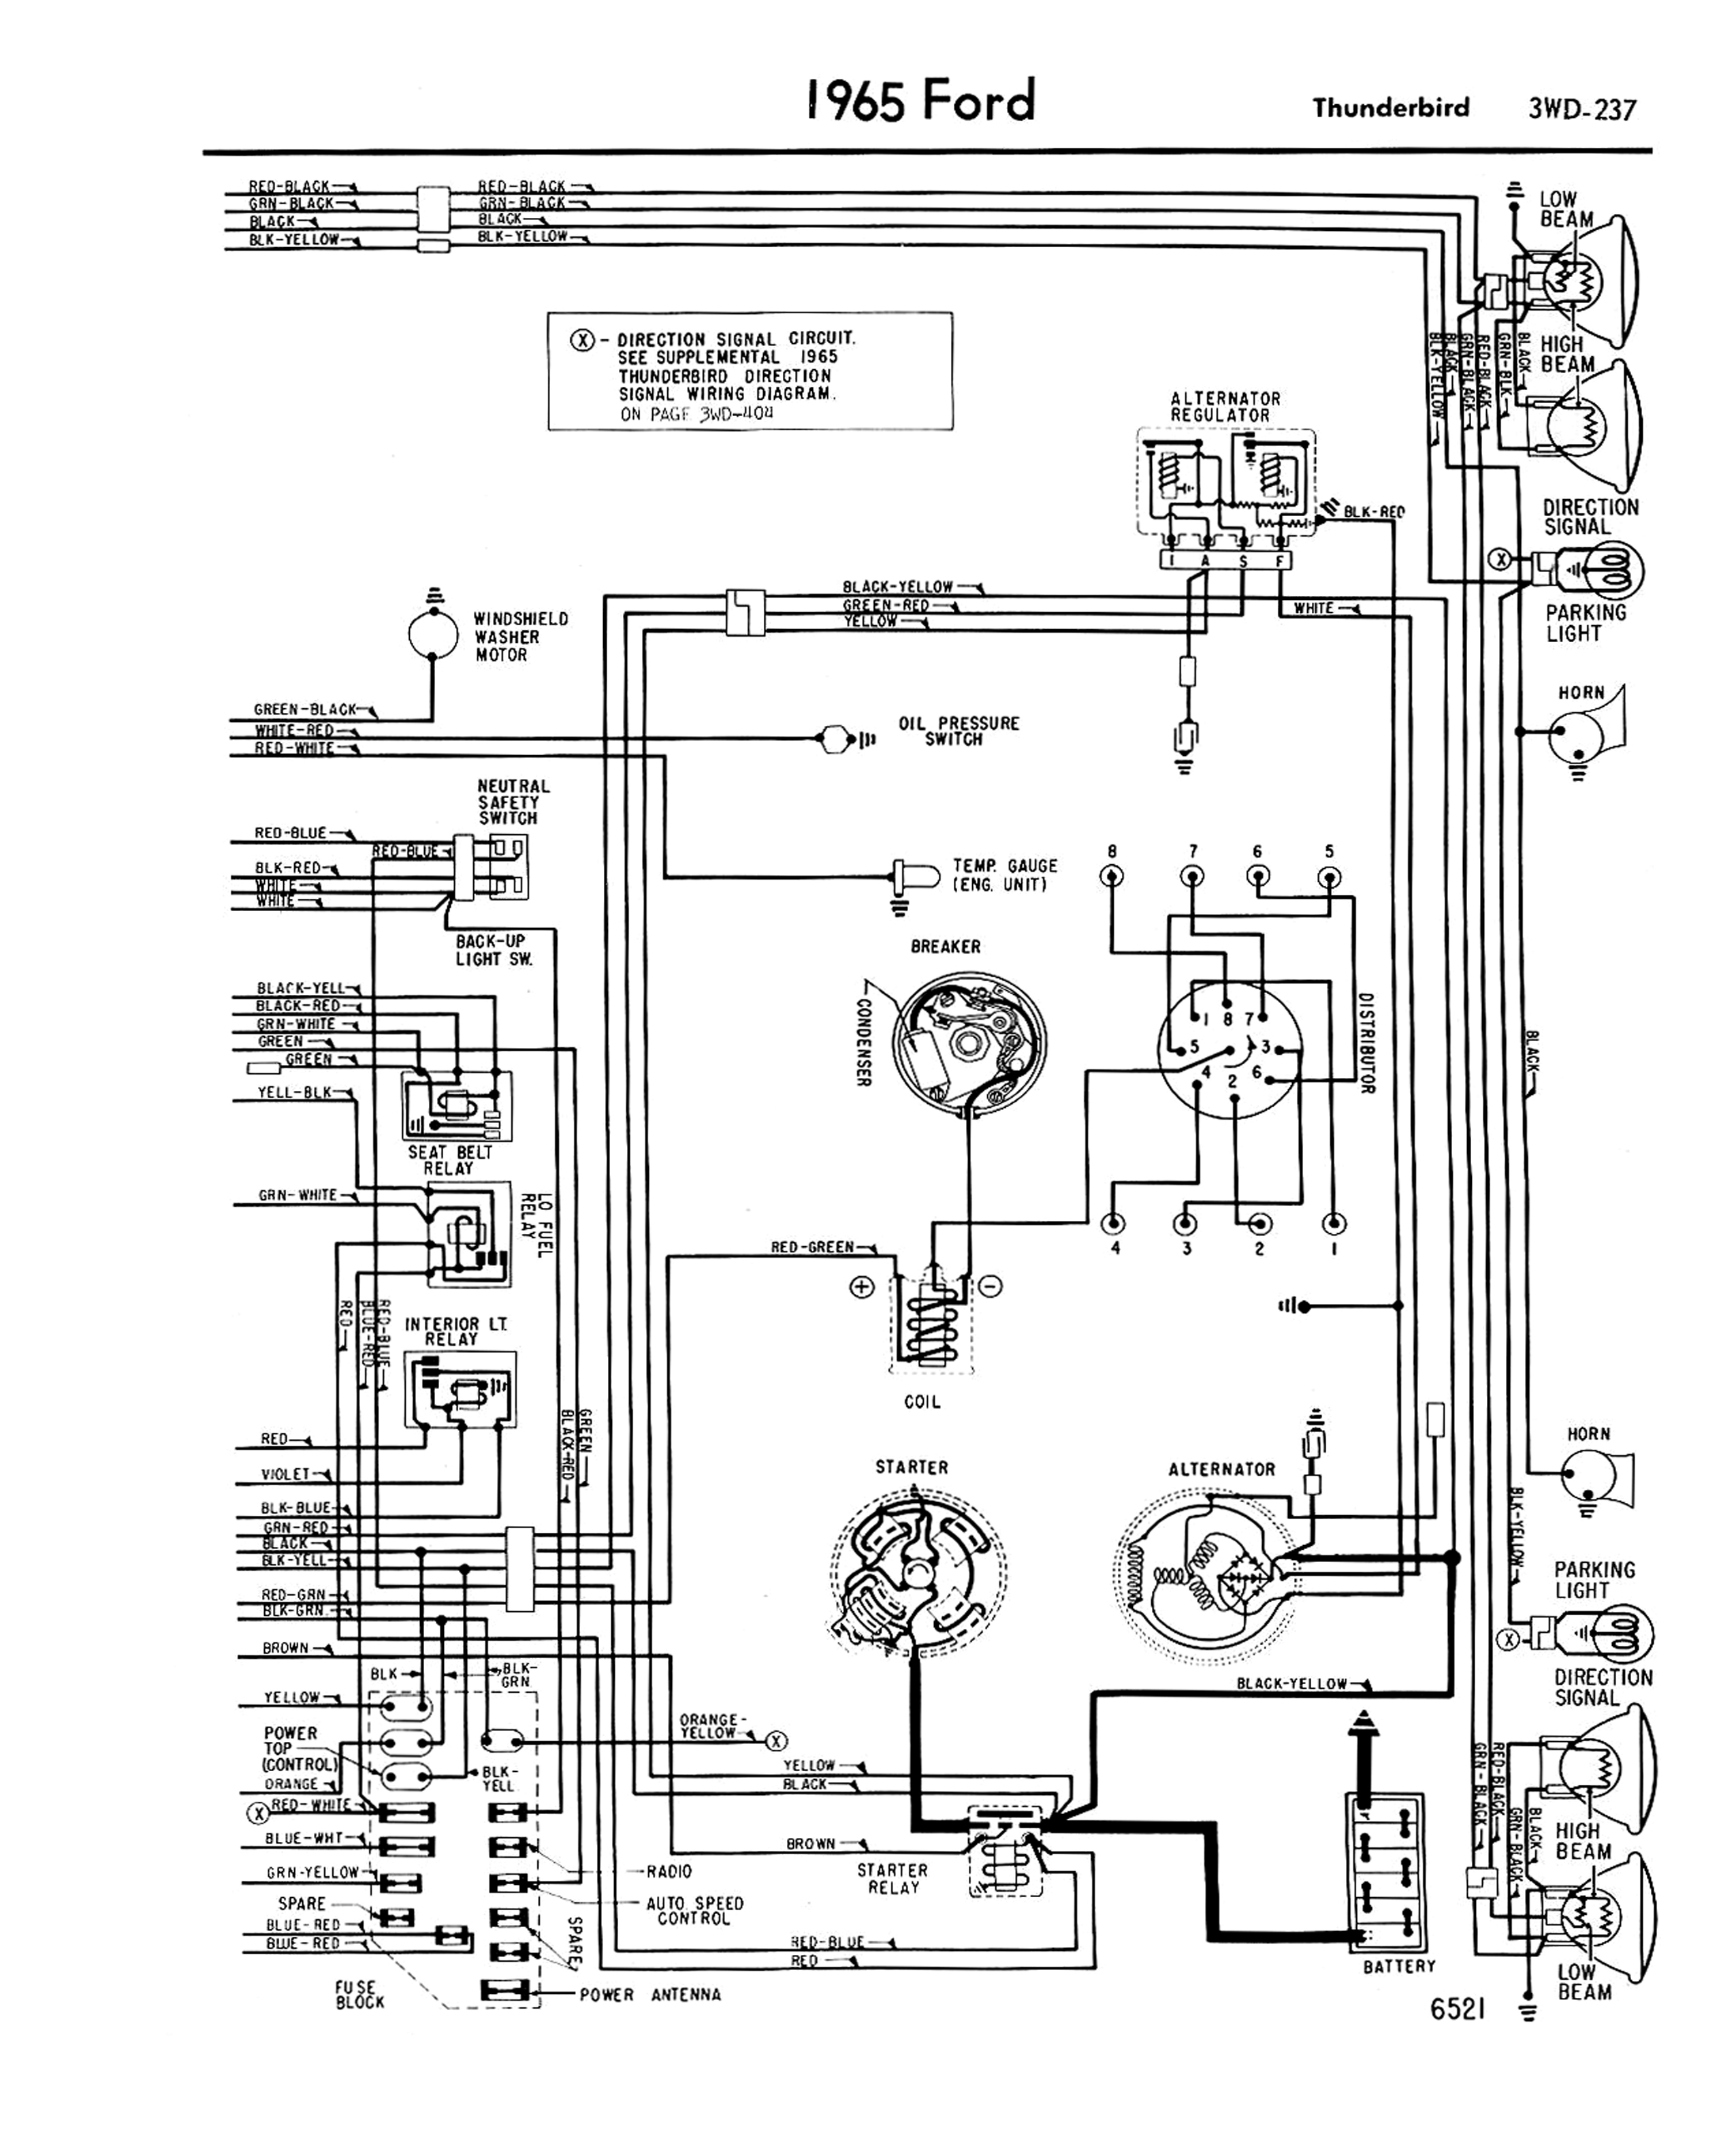 1965 Ford F100 Wiring Schematic : 31 Wiring Diagram Images